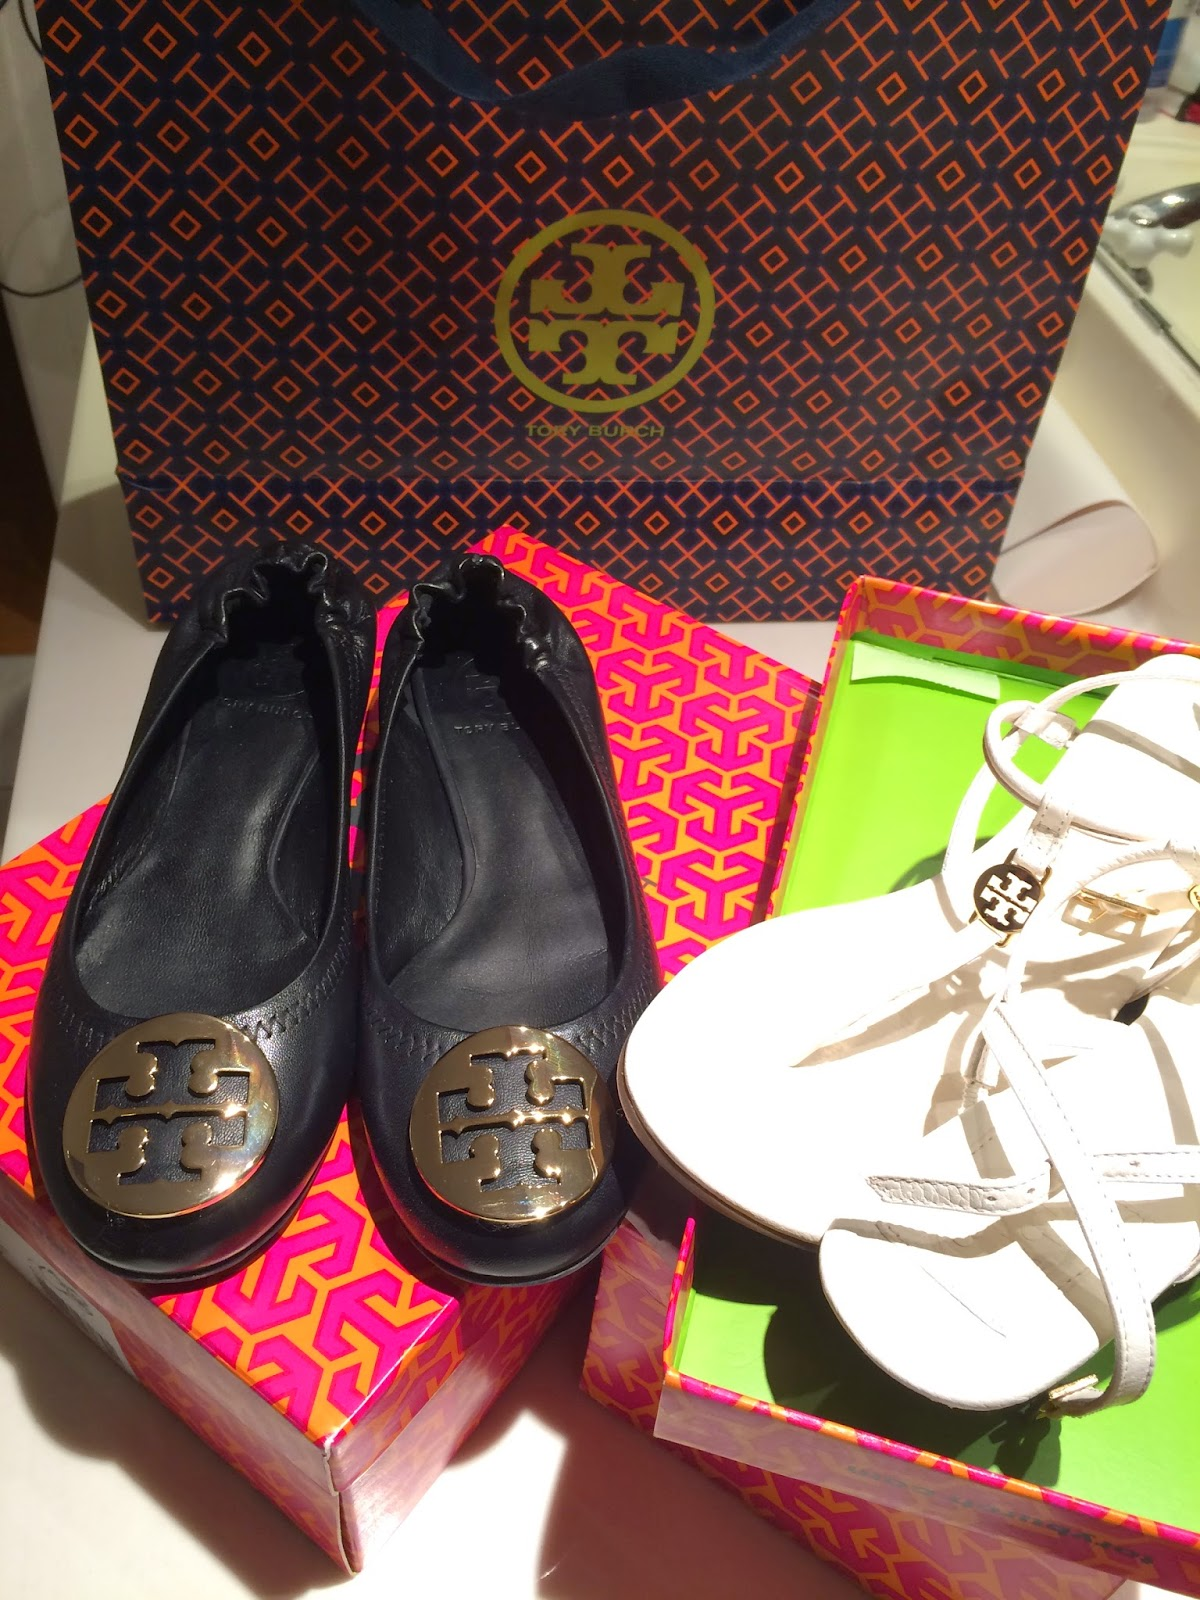 Tory Burch Black Reva Flats and White Emmy Demi Sandals